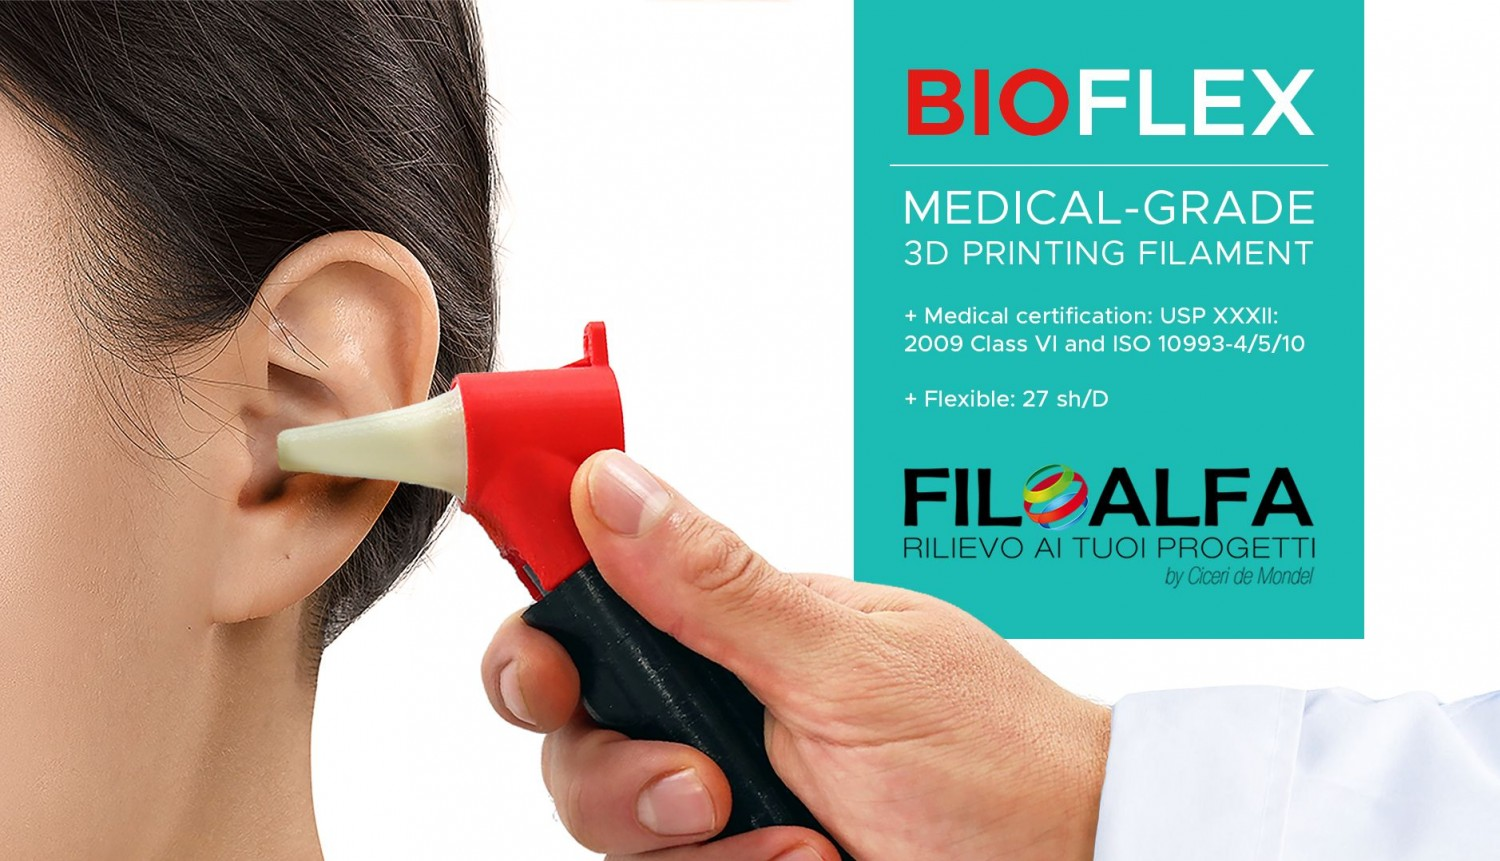 Filamento Filoalfa BIOFLEX - FLEXIBLE 27 SHORE D Ø 1.75 MM